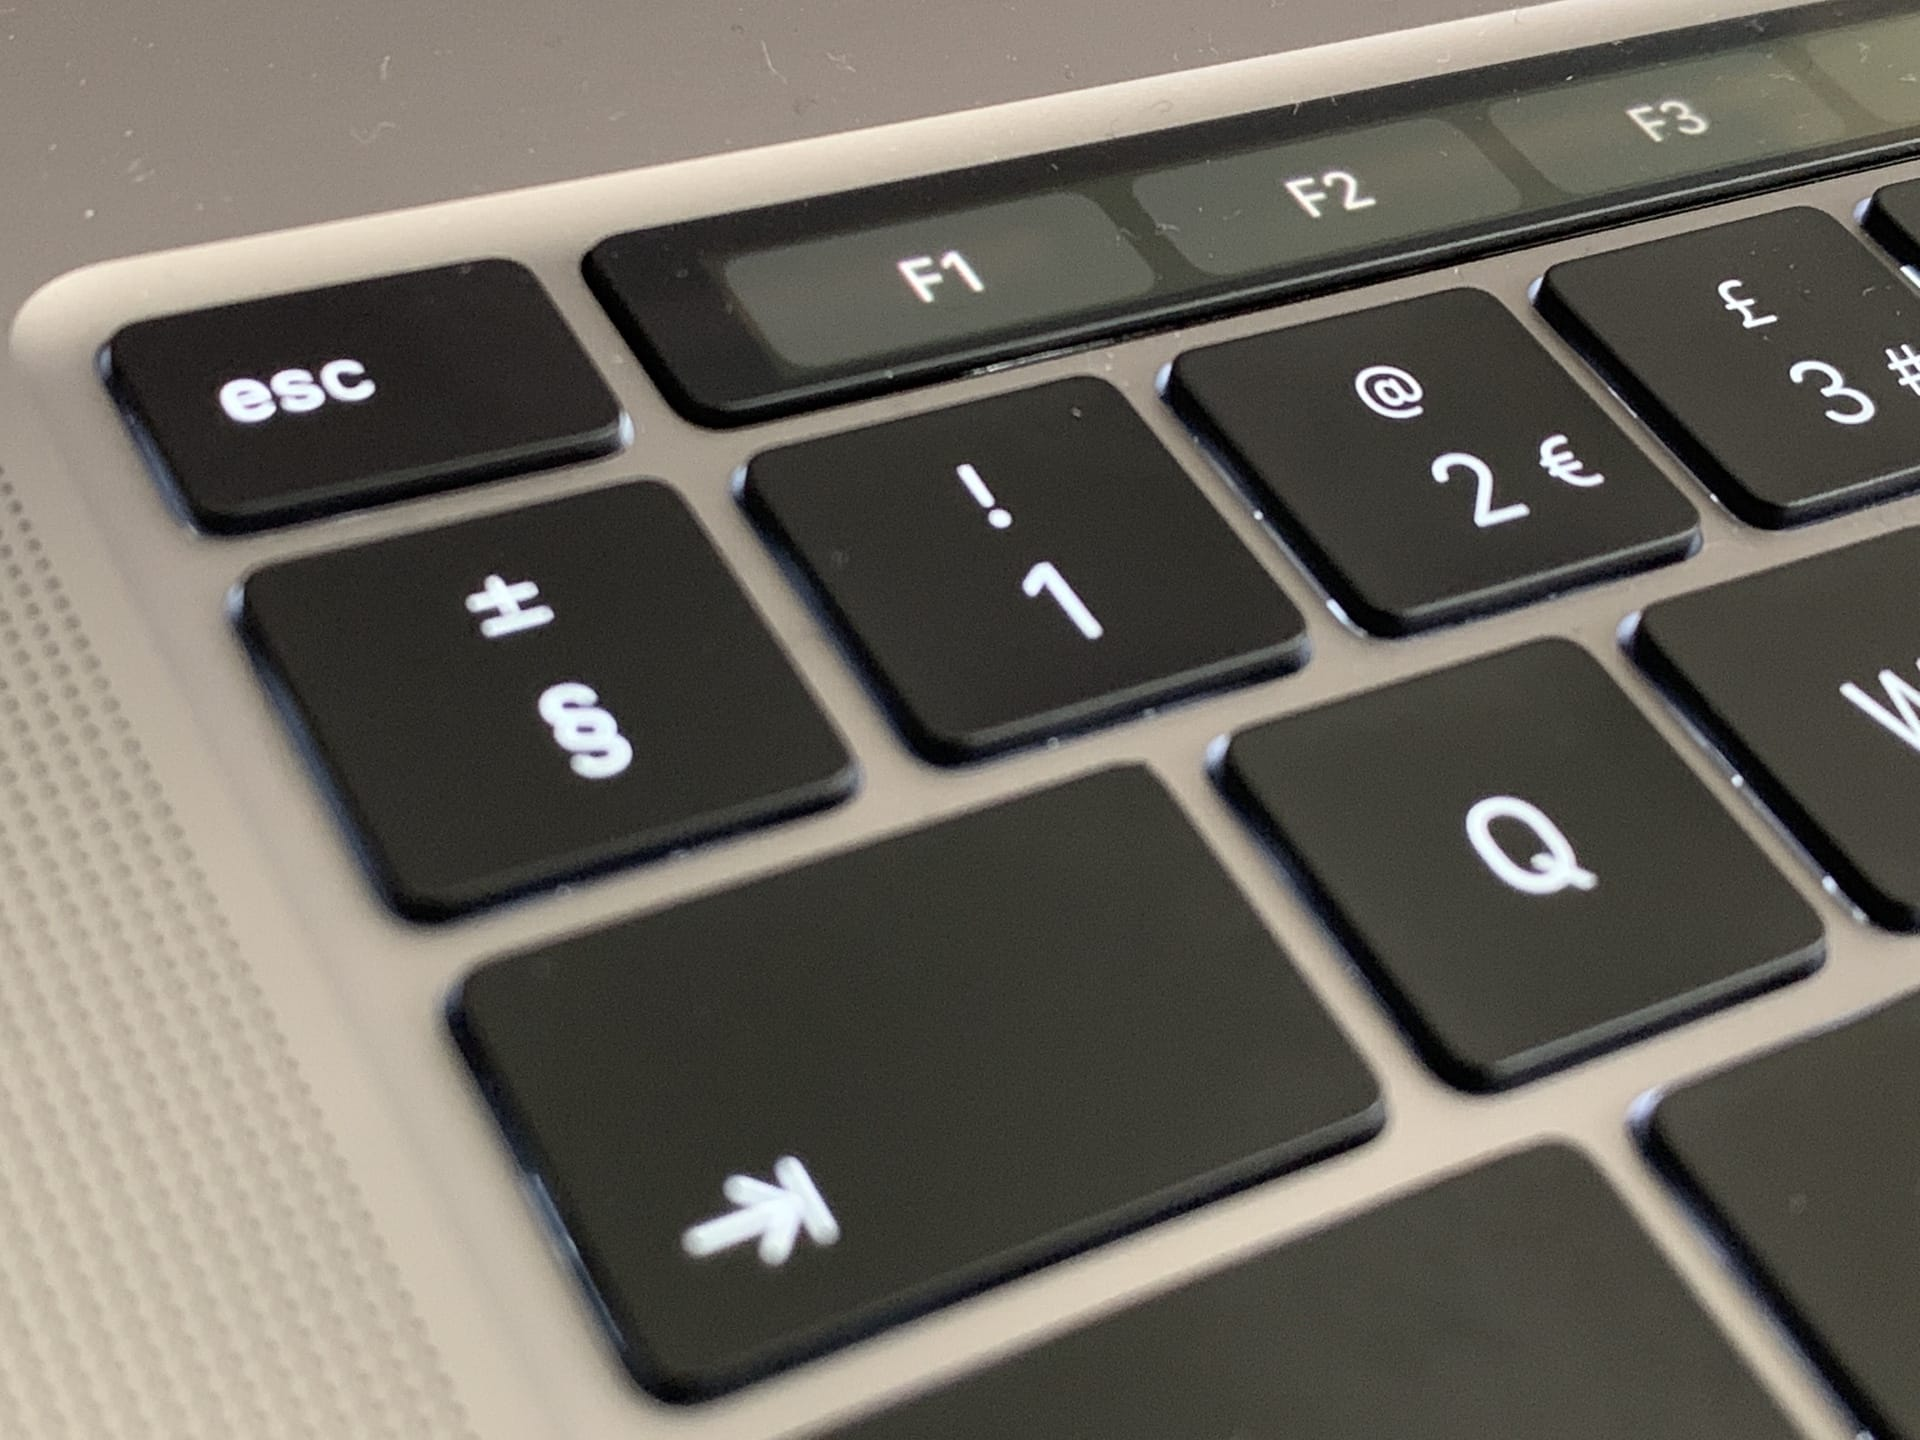 You can turn the Touch Bar into a row of permanent function keys, if you like.